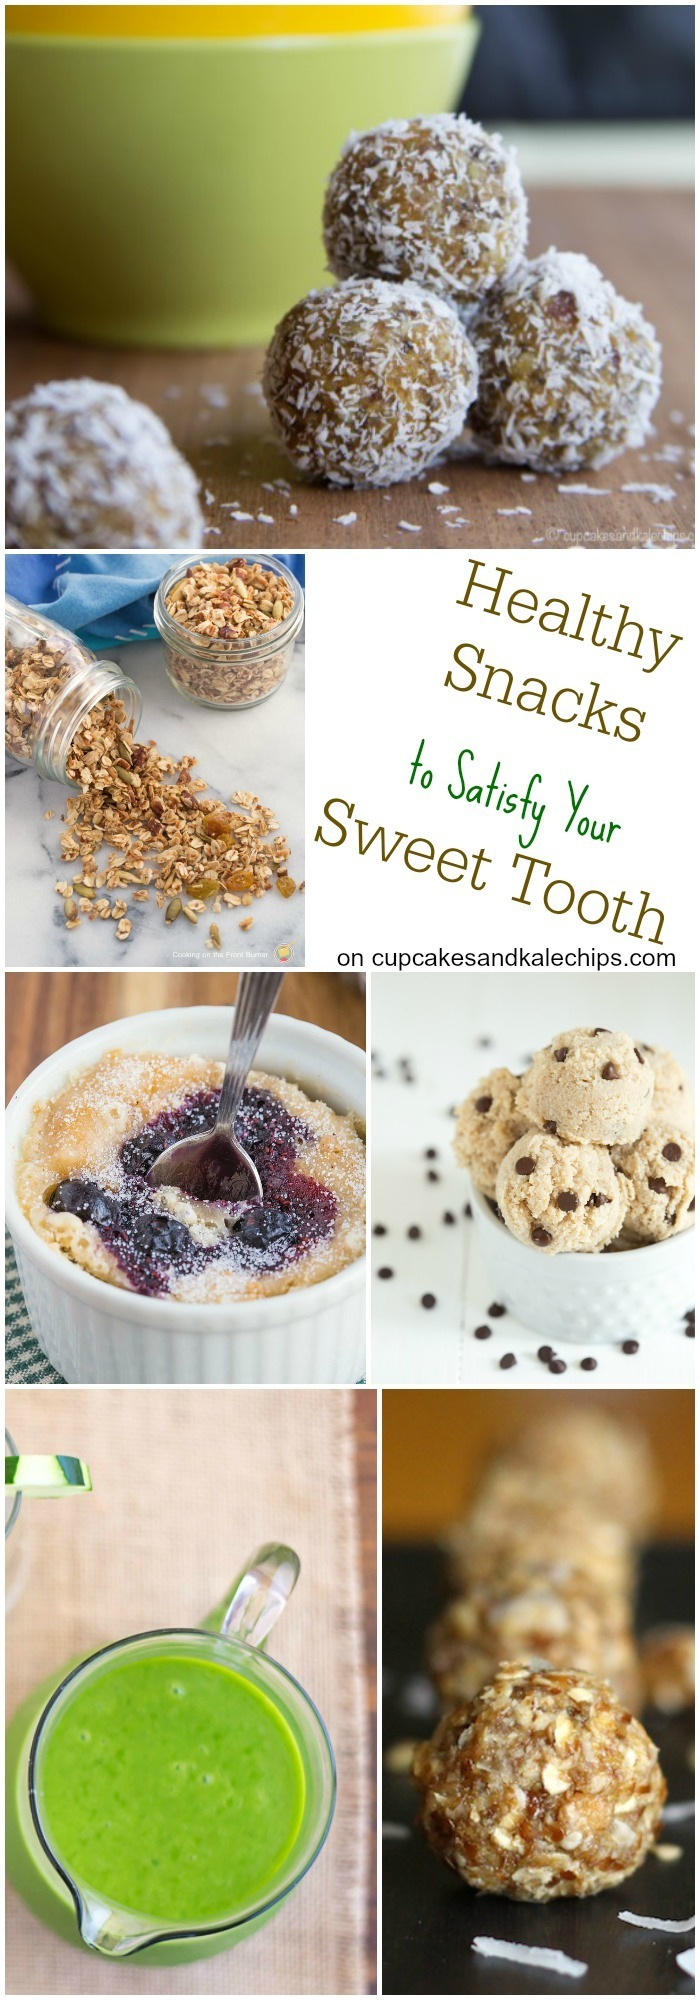 25 Healthy Snacks to Satisfy Your Sweet Tooth